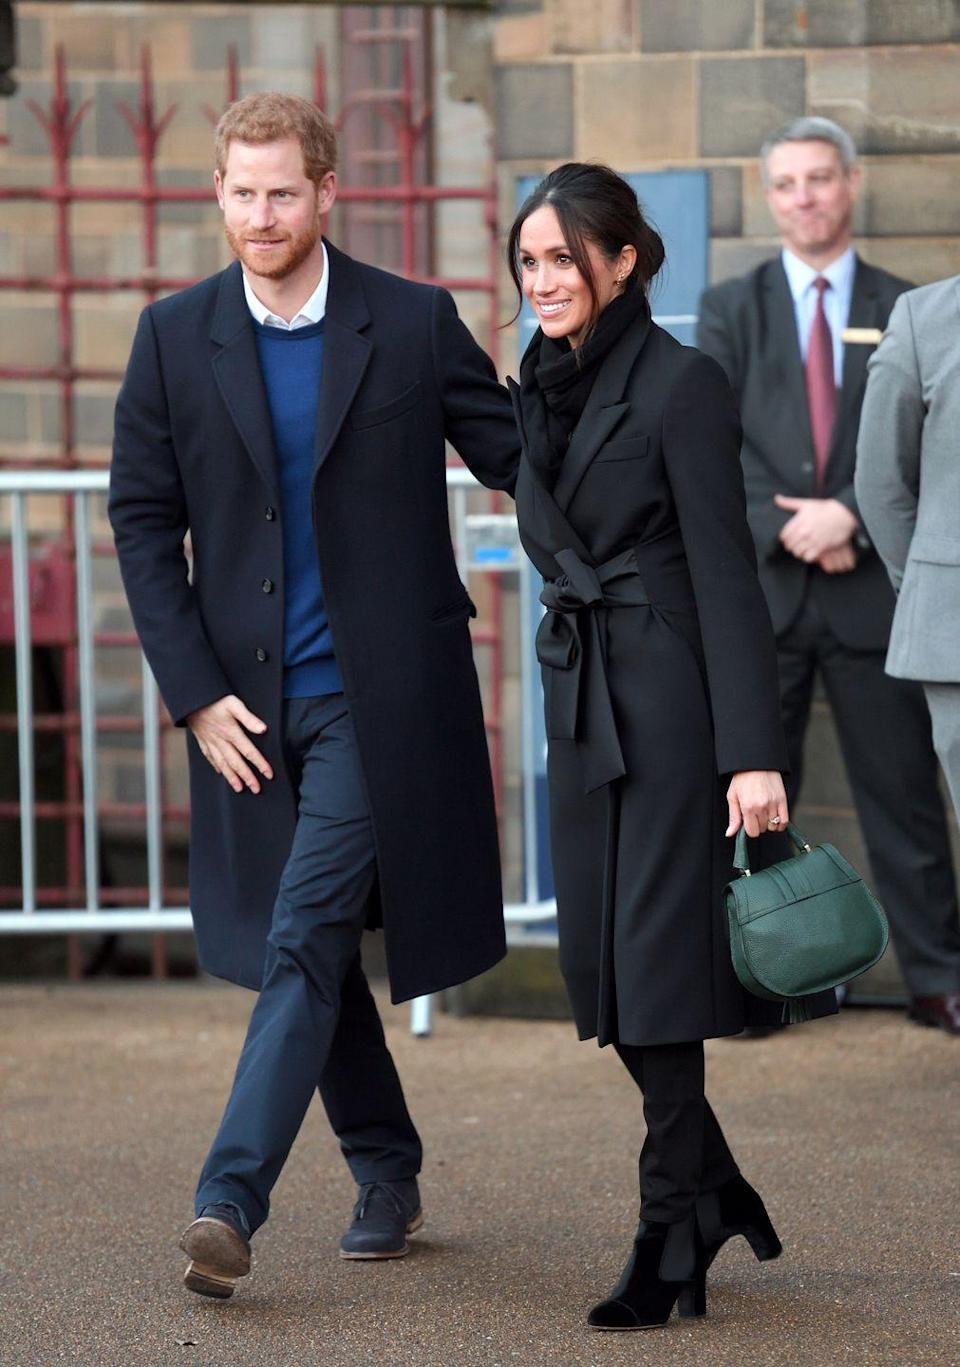 "<p>Meghan Markle married Prince Harry in <a href=""https://www.cosmopolitan.com/entertainment/a22859393/meghan-markle-wedding-dress-display/"" rel=""nofollow noopener"" target=""_blank"" data-ylk=""slk:one of the most iconic royal weddings in history"" class=""link rapid-noclick-resp"">one of the most iconic royal weddings in history</a>. She is yet another commoner to capture the heart of a royal. Markle, best known for her role on <em>Suits</em>, and Harry were set up on a date by a mutual friend. The two, who have been <a href=""https://www.cosmopolitan.com/entertainment/celebs/a8673228/prince-harry-meghan-markle-dating-timeline/"" rel=""nofollow noopener"" target=""_blank"" data-ylk=""slk:linked since 2016"" class=""link rapid-noclick-resp"">linked since 2016</a>, became engaged at the end of 2017 and married in May 2018. </p>"